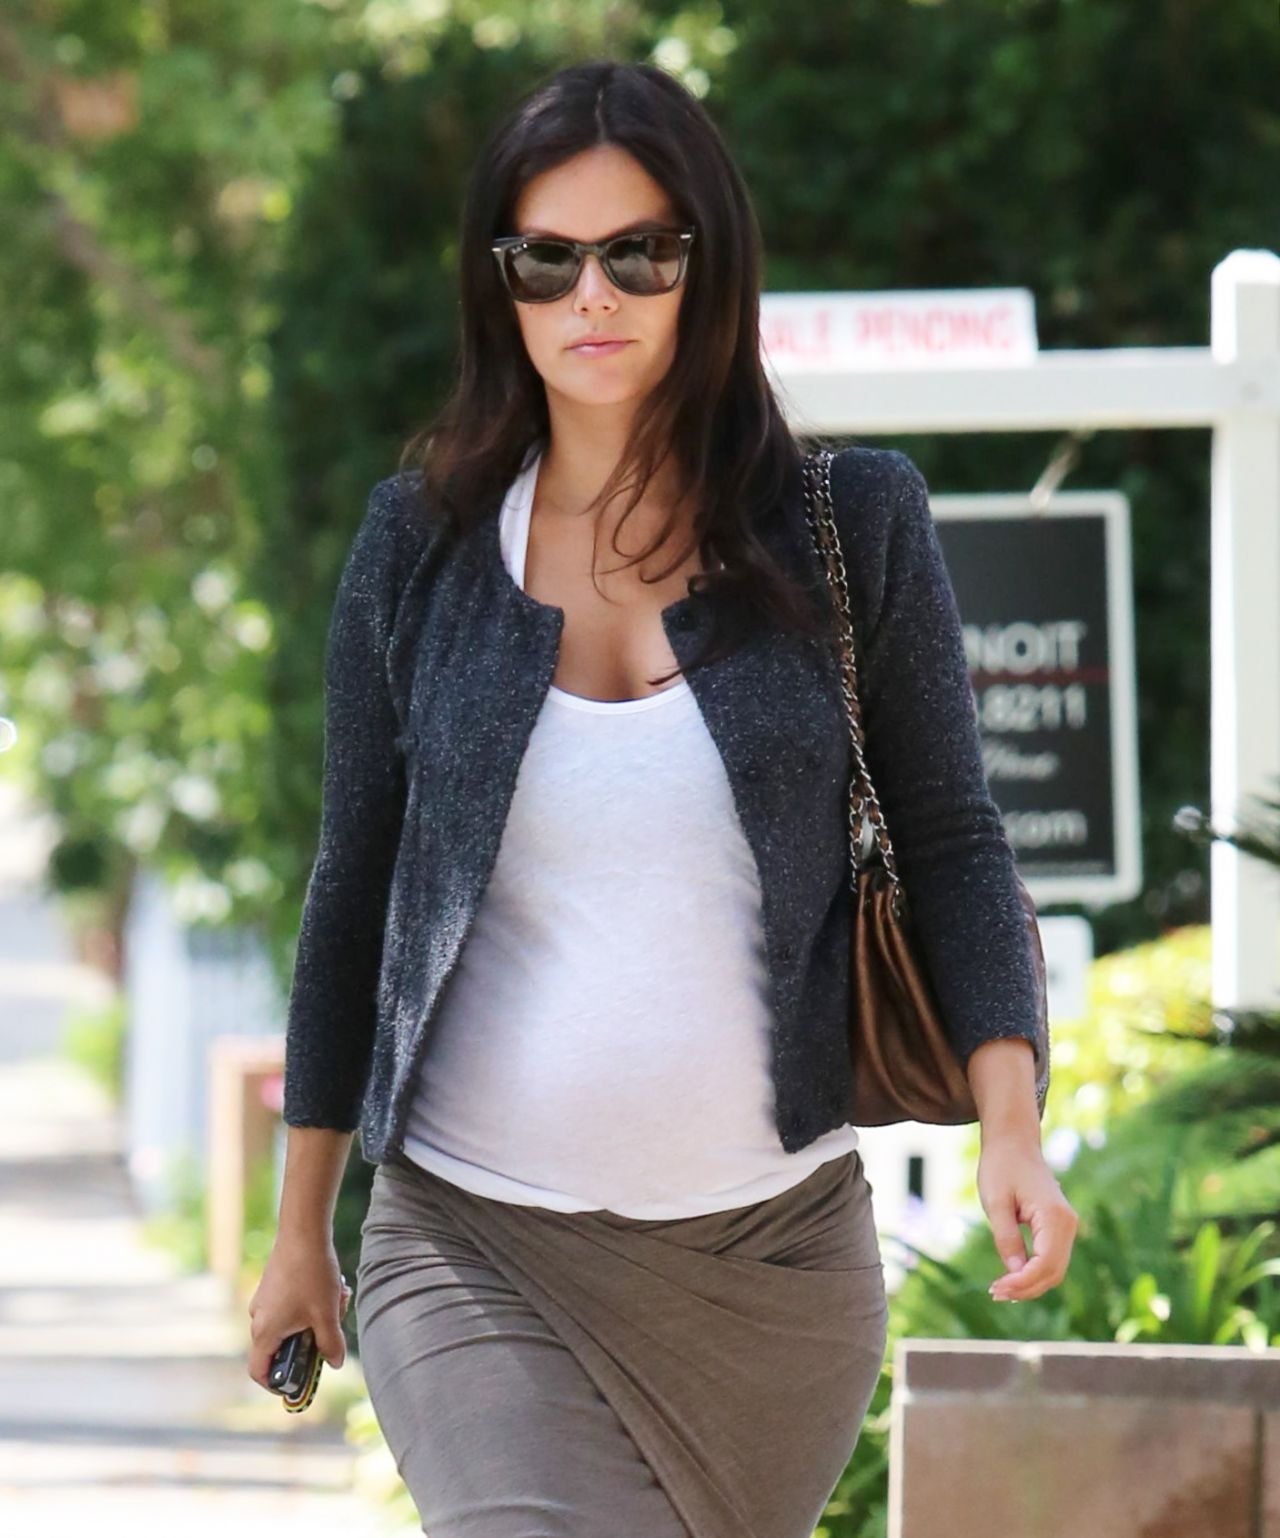 Rachel Bilson Street Style - Out in West Hollywood - July 2014